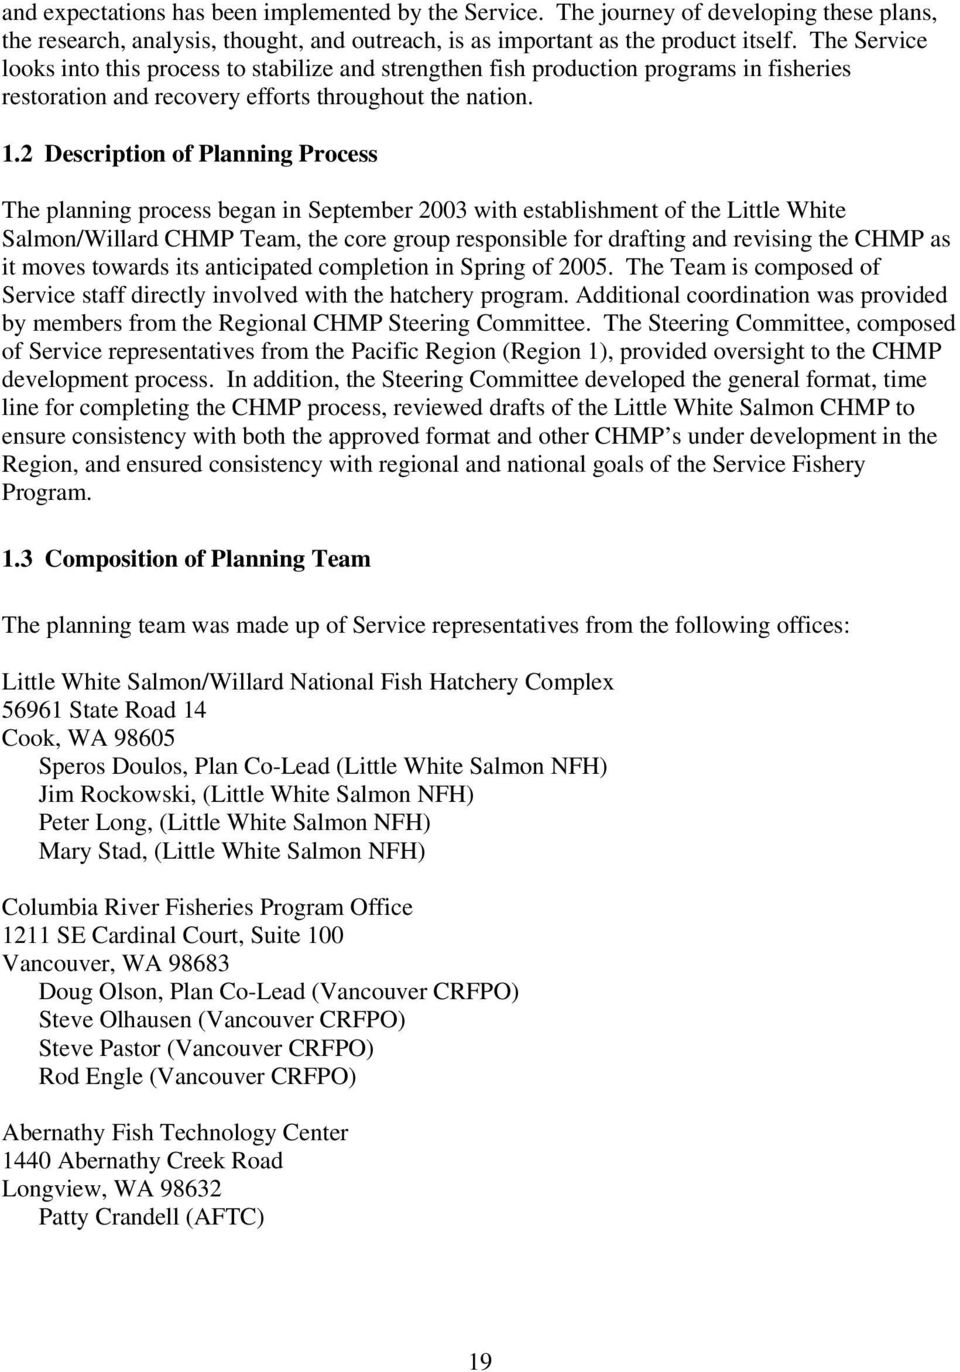 2 Description of Planning Process The planning process began in September 2003 with establishment of the Little White Salmon/Willard CHMP Team, the core group responsible for drafting and revising